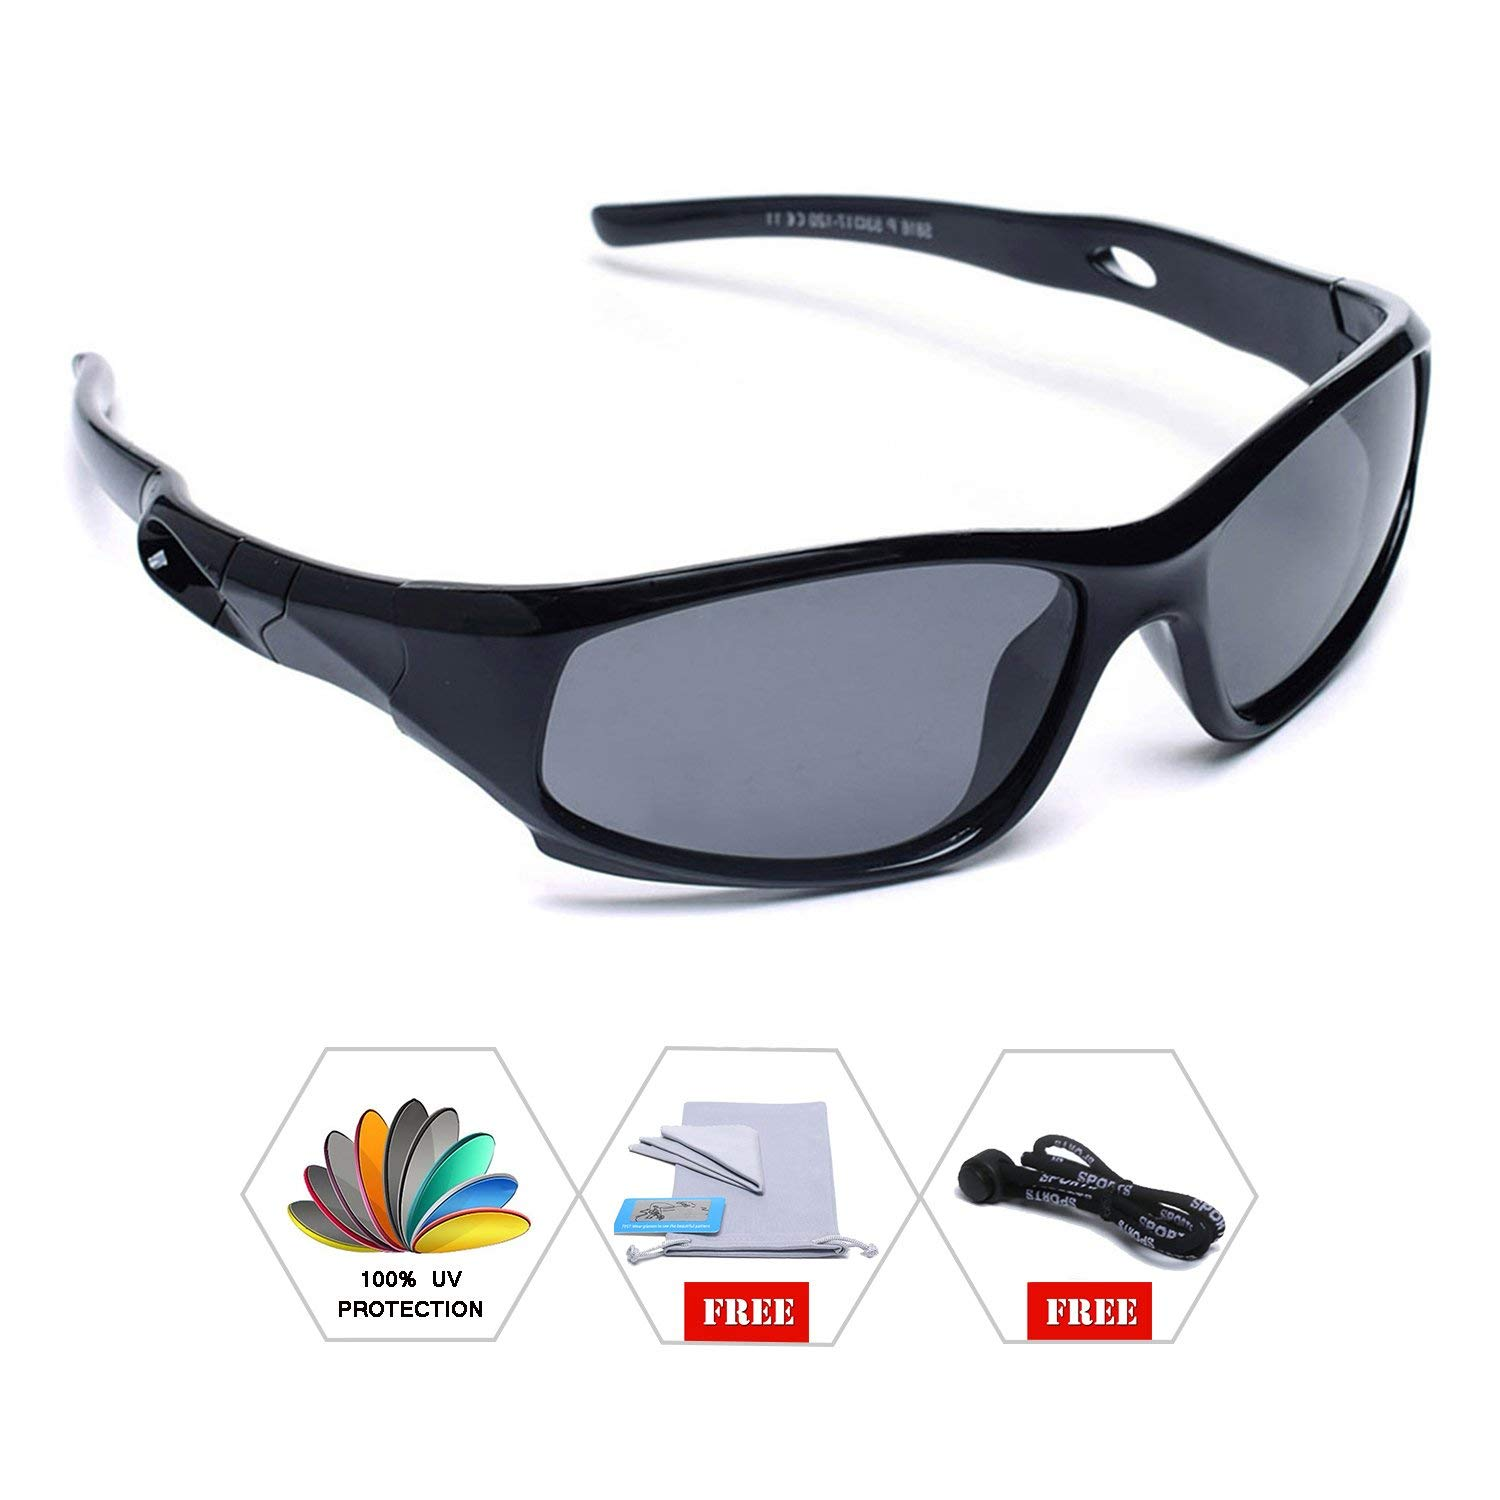 8f09f085ad51 AODUOKE Sports Polarized Kids Sunglasses For Boys Girls Children Mirrored  Lens Sunglasses With Strap